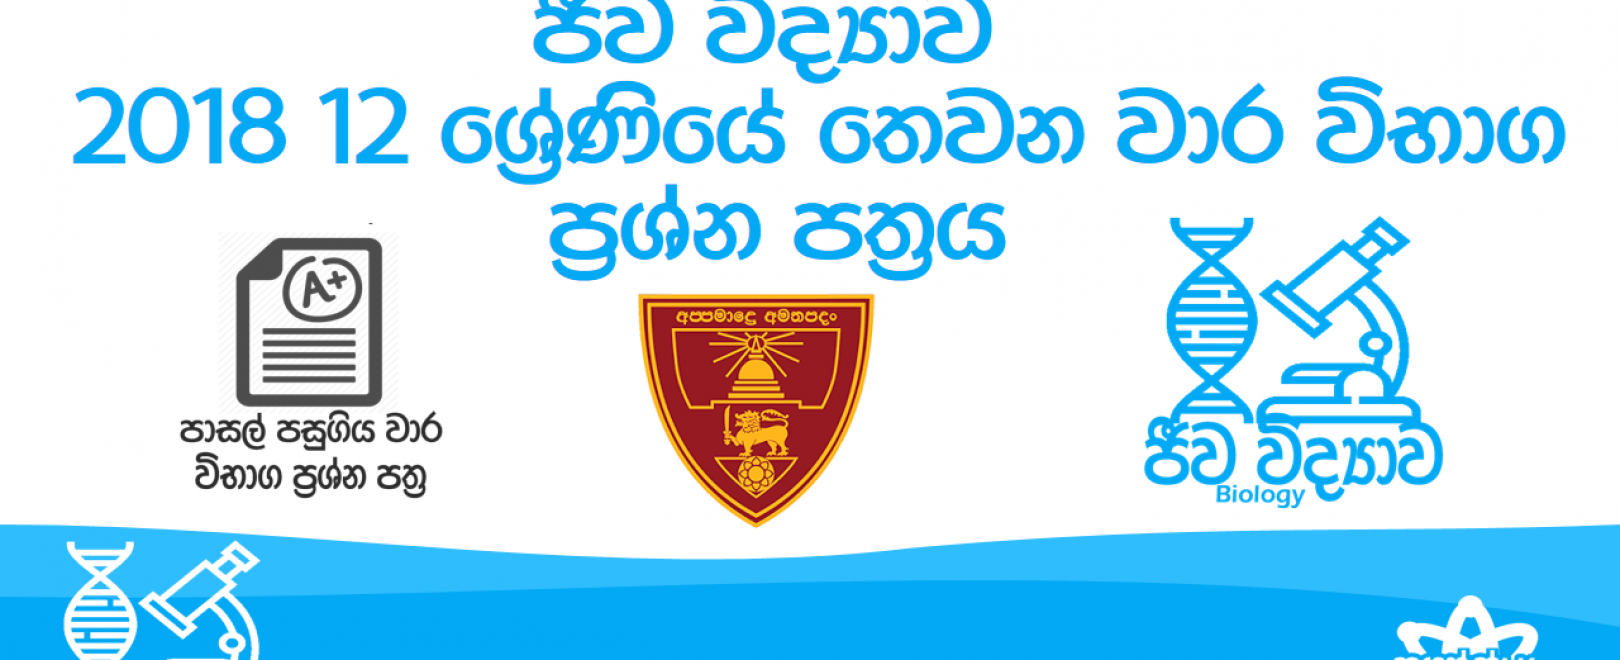 Ananda College 2018 Biology Grade 12 3rd Term Test Paper